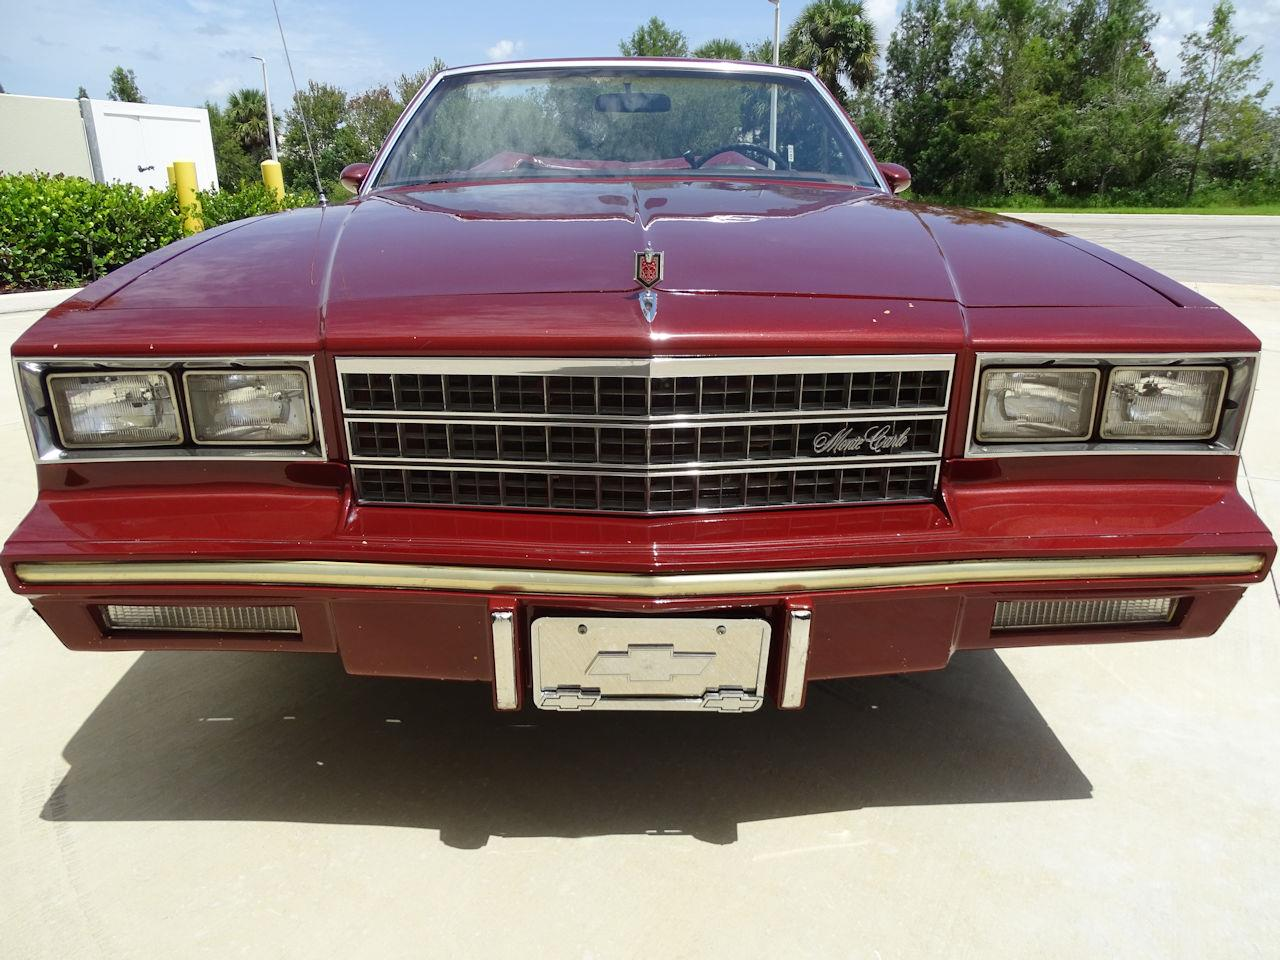 1982 Chevrolet Monte Carlo (CC-1388890) for sale in O'Fallon, Illinois